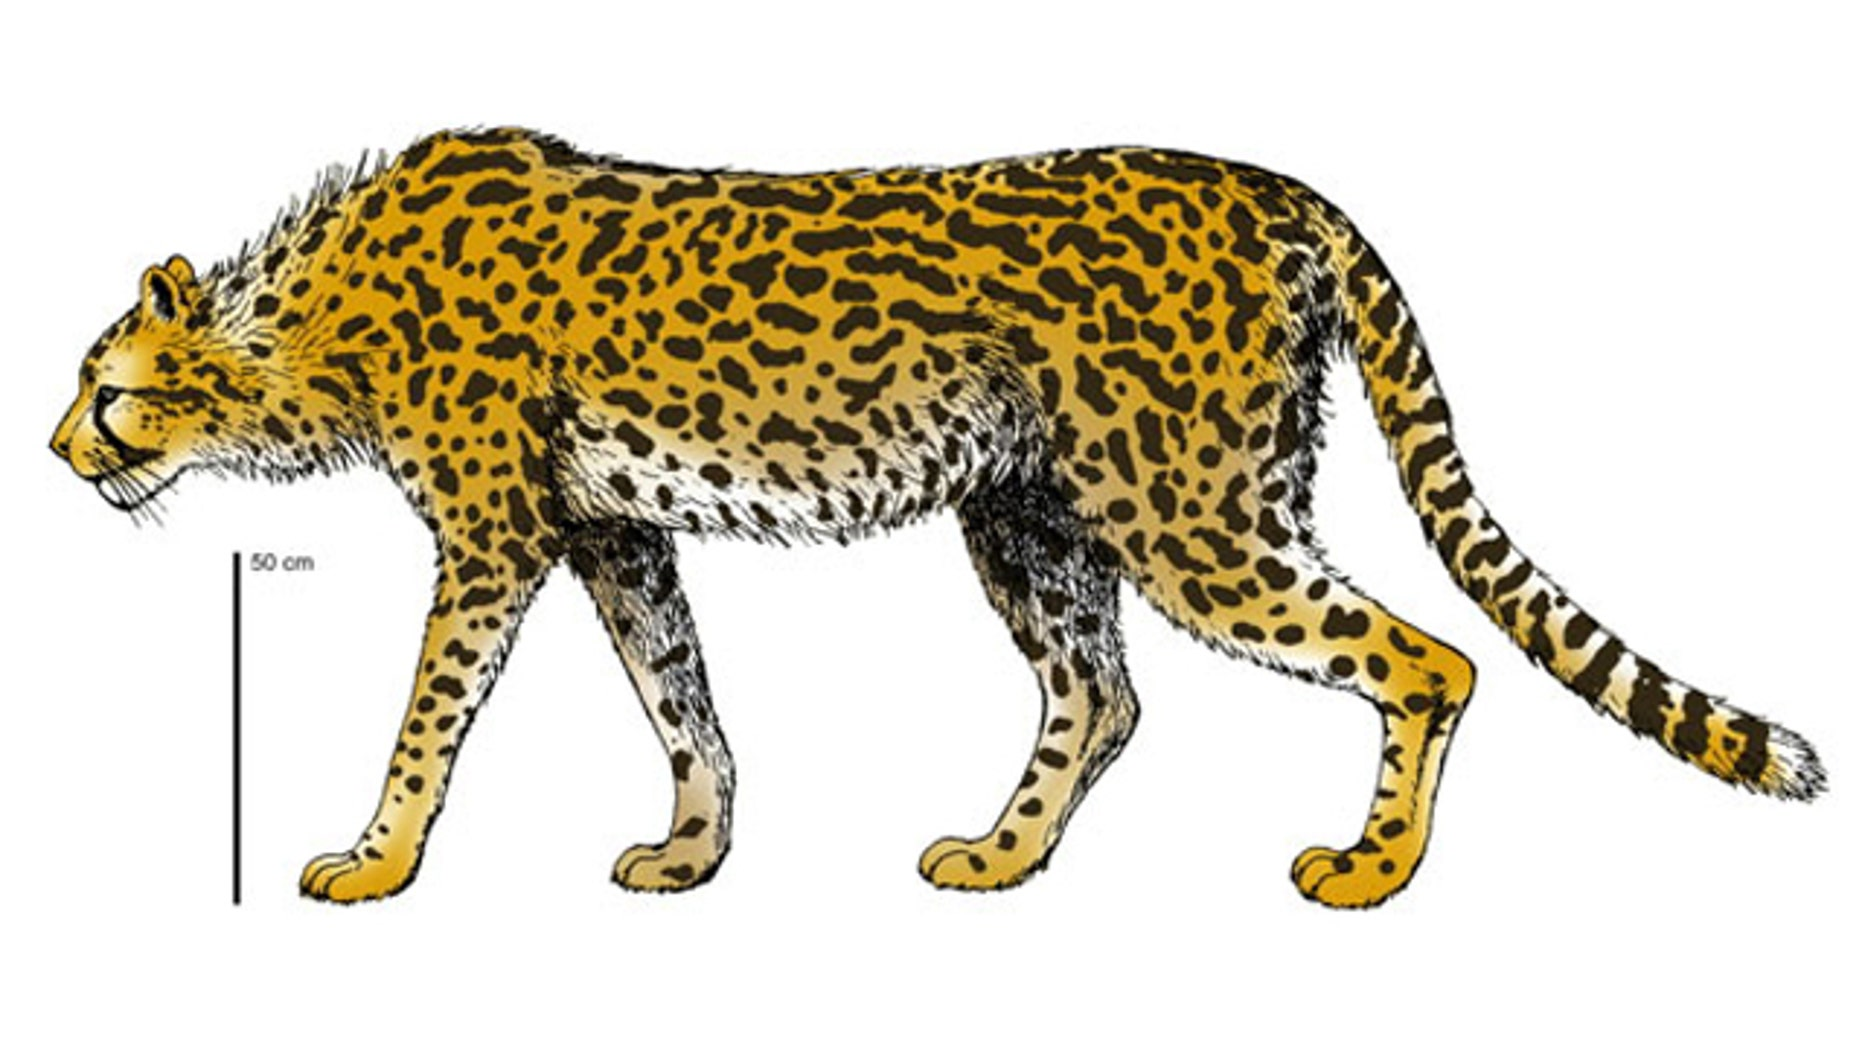 The extinct cheetah, Acinonyx pardinensis would have weighed double what its modern cousin weighs (shown here in a reconstruction).